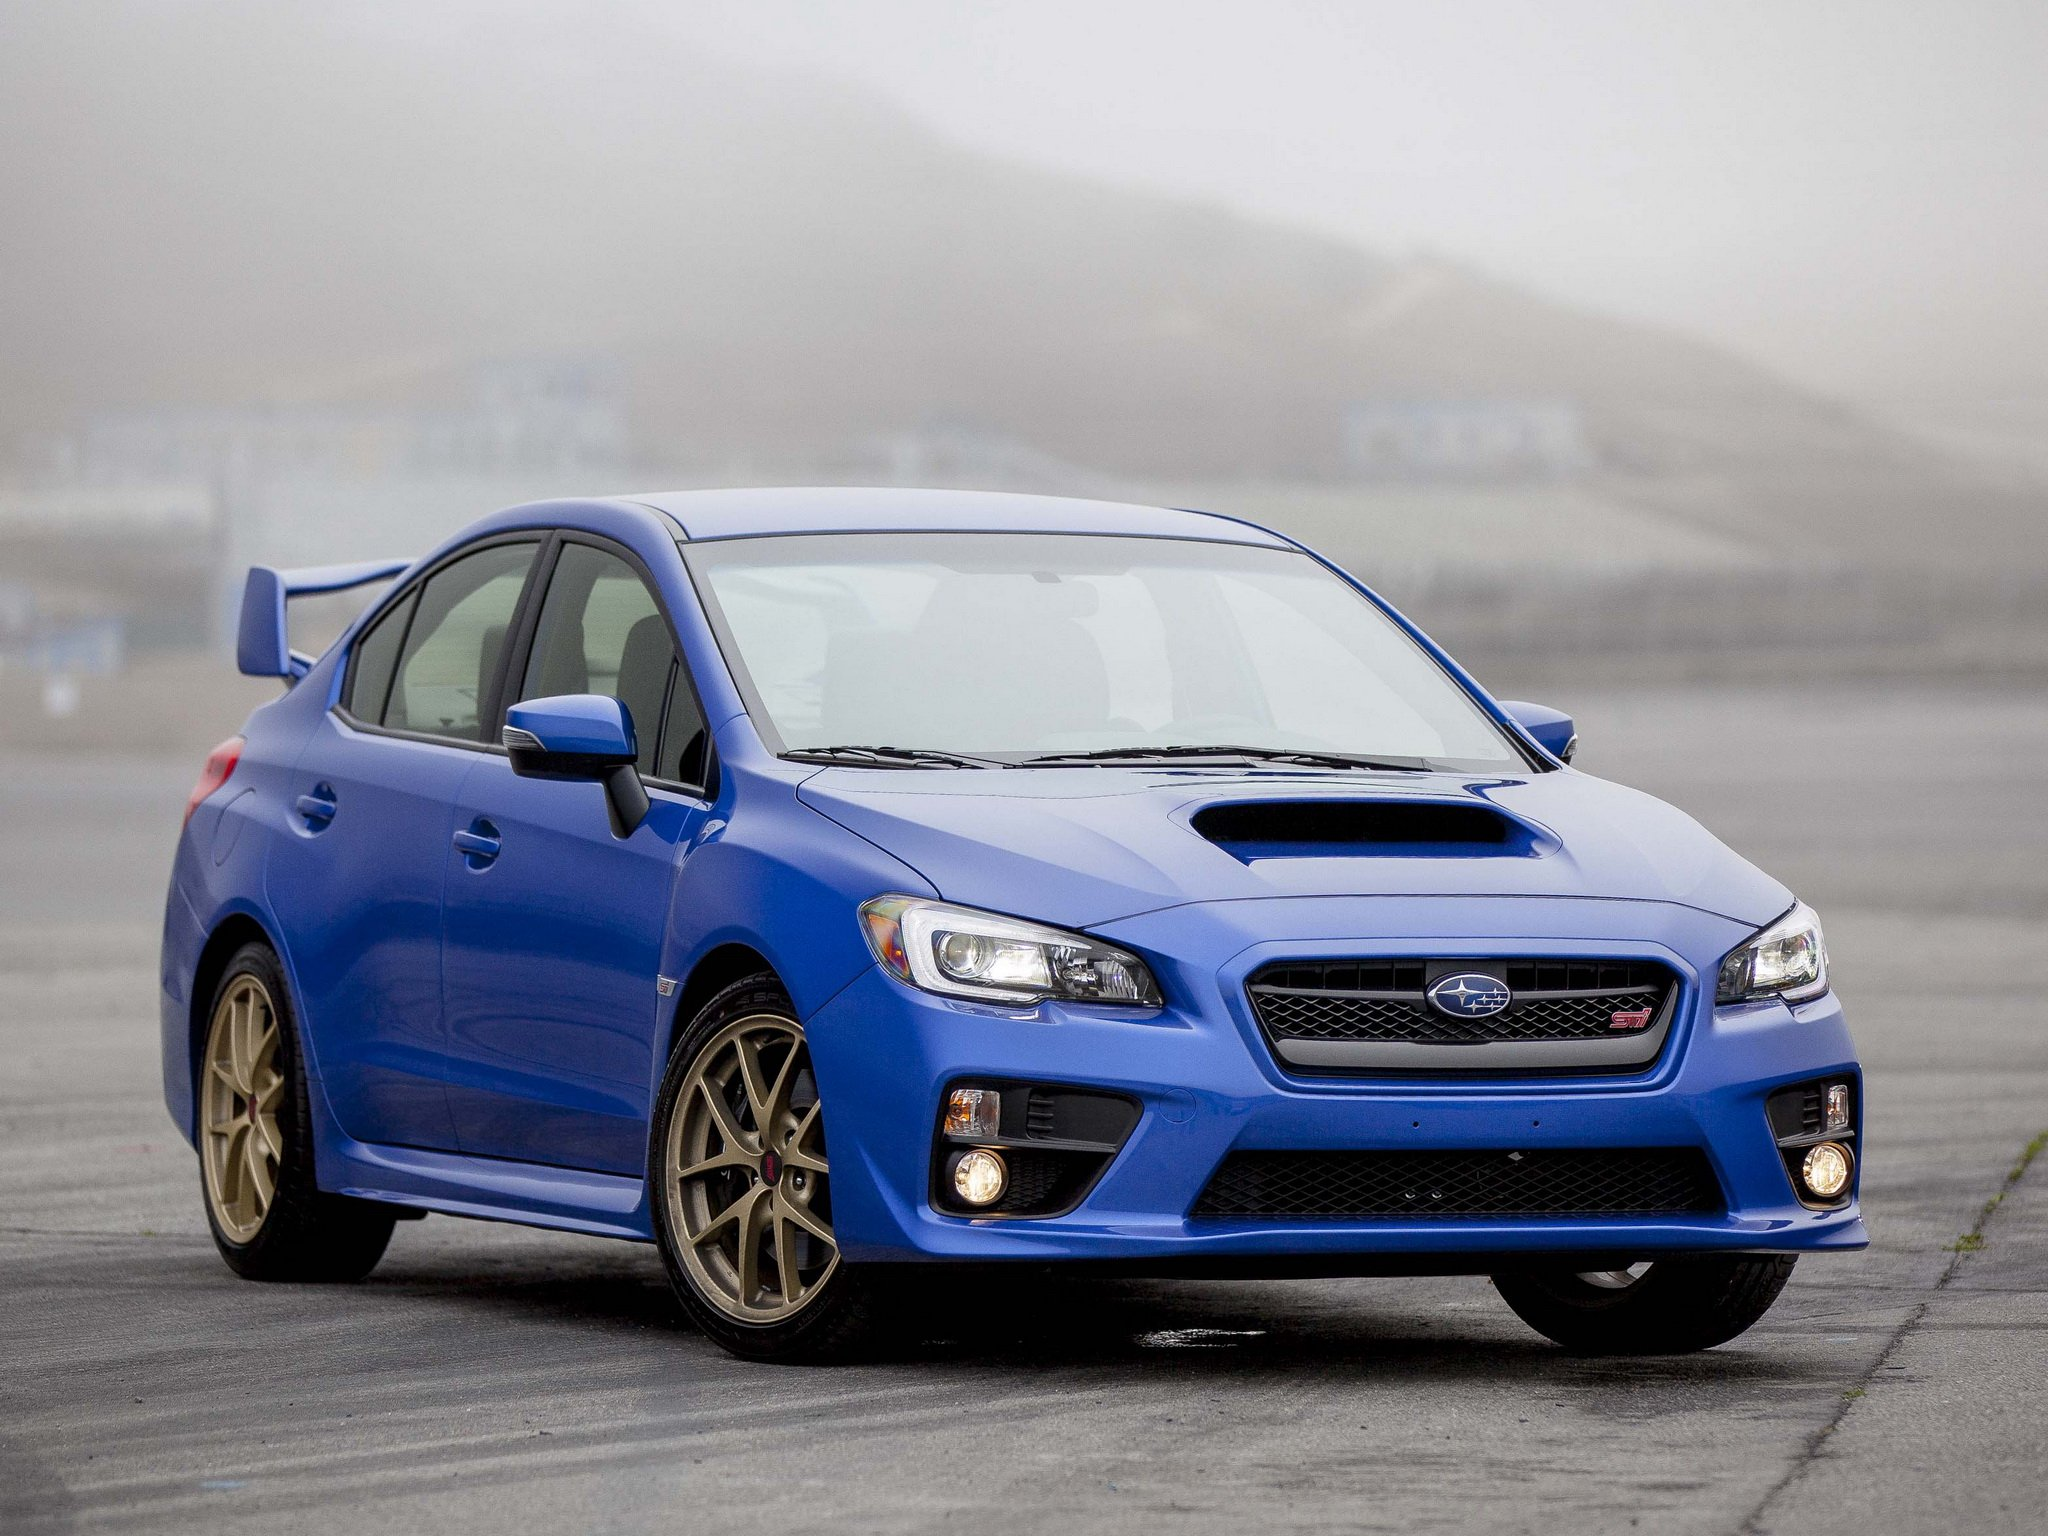 2014 subaru wrx sti us spec rw wallpaper 2048x1536 311000 wallpaperup. Black Bedroom Furniture Sets. Home Design Ideas